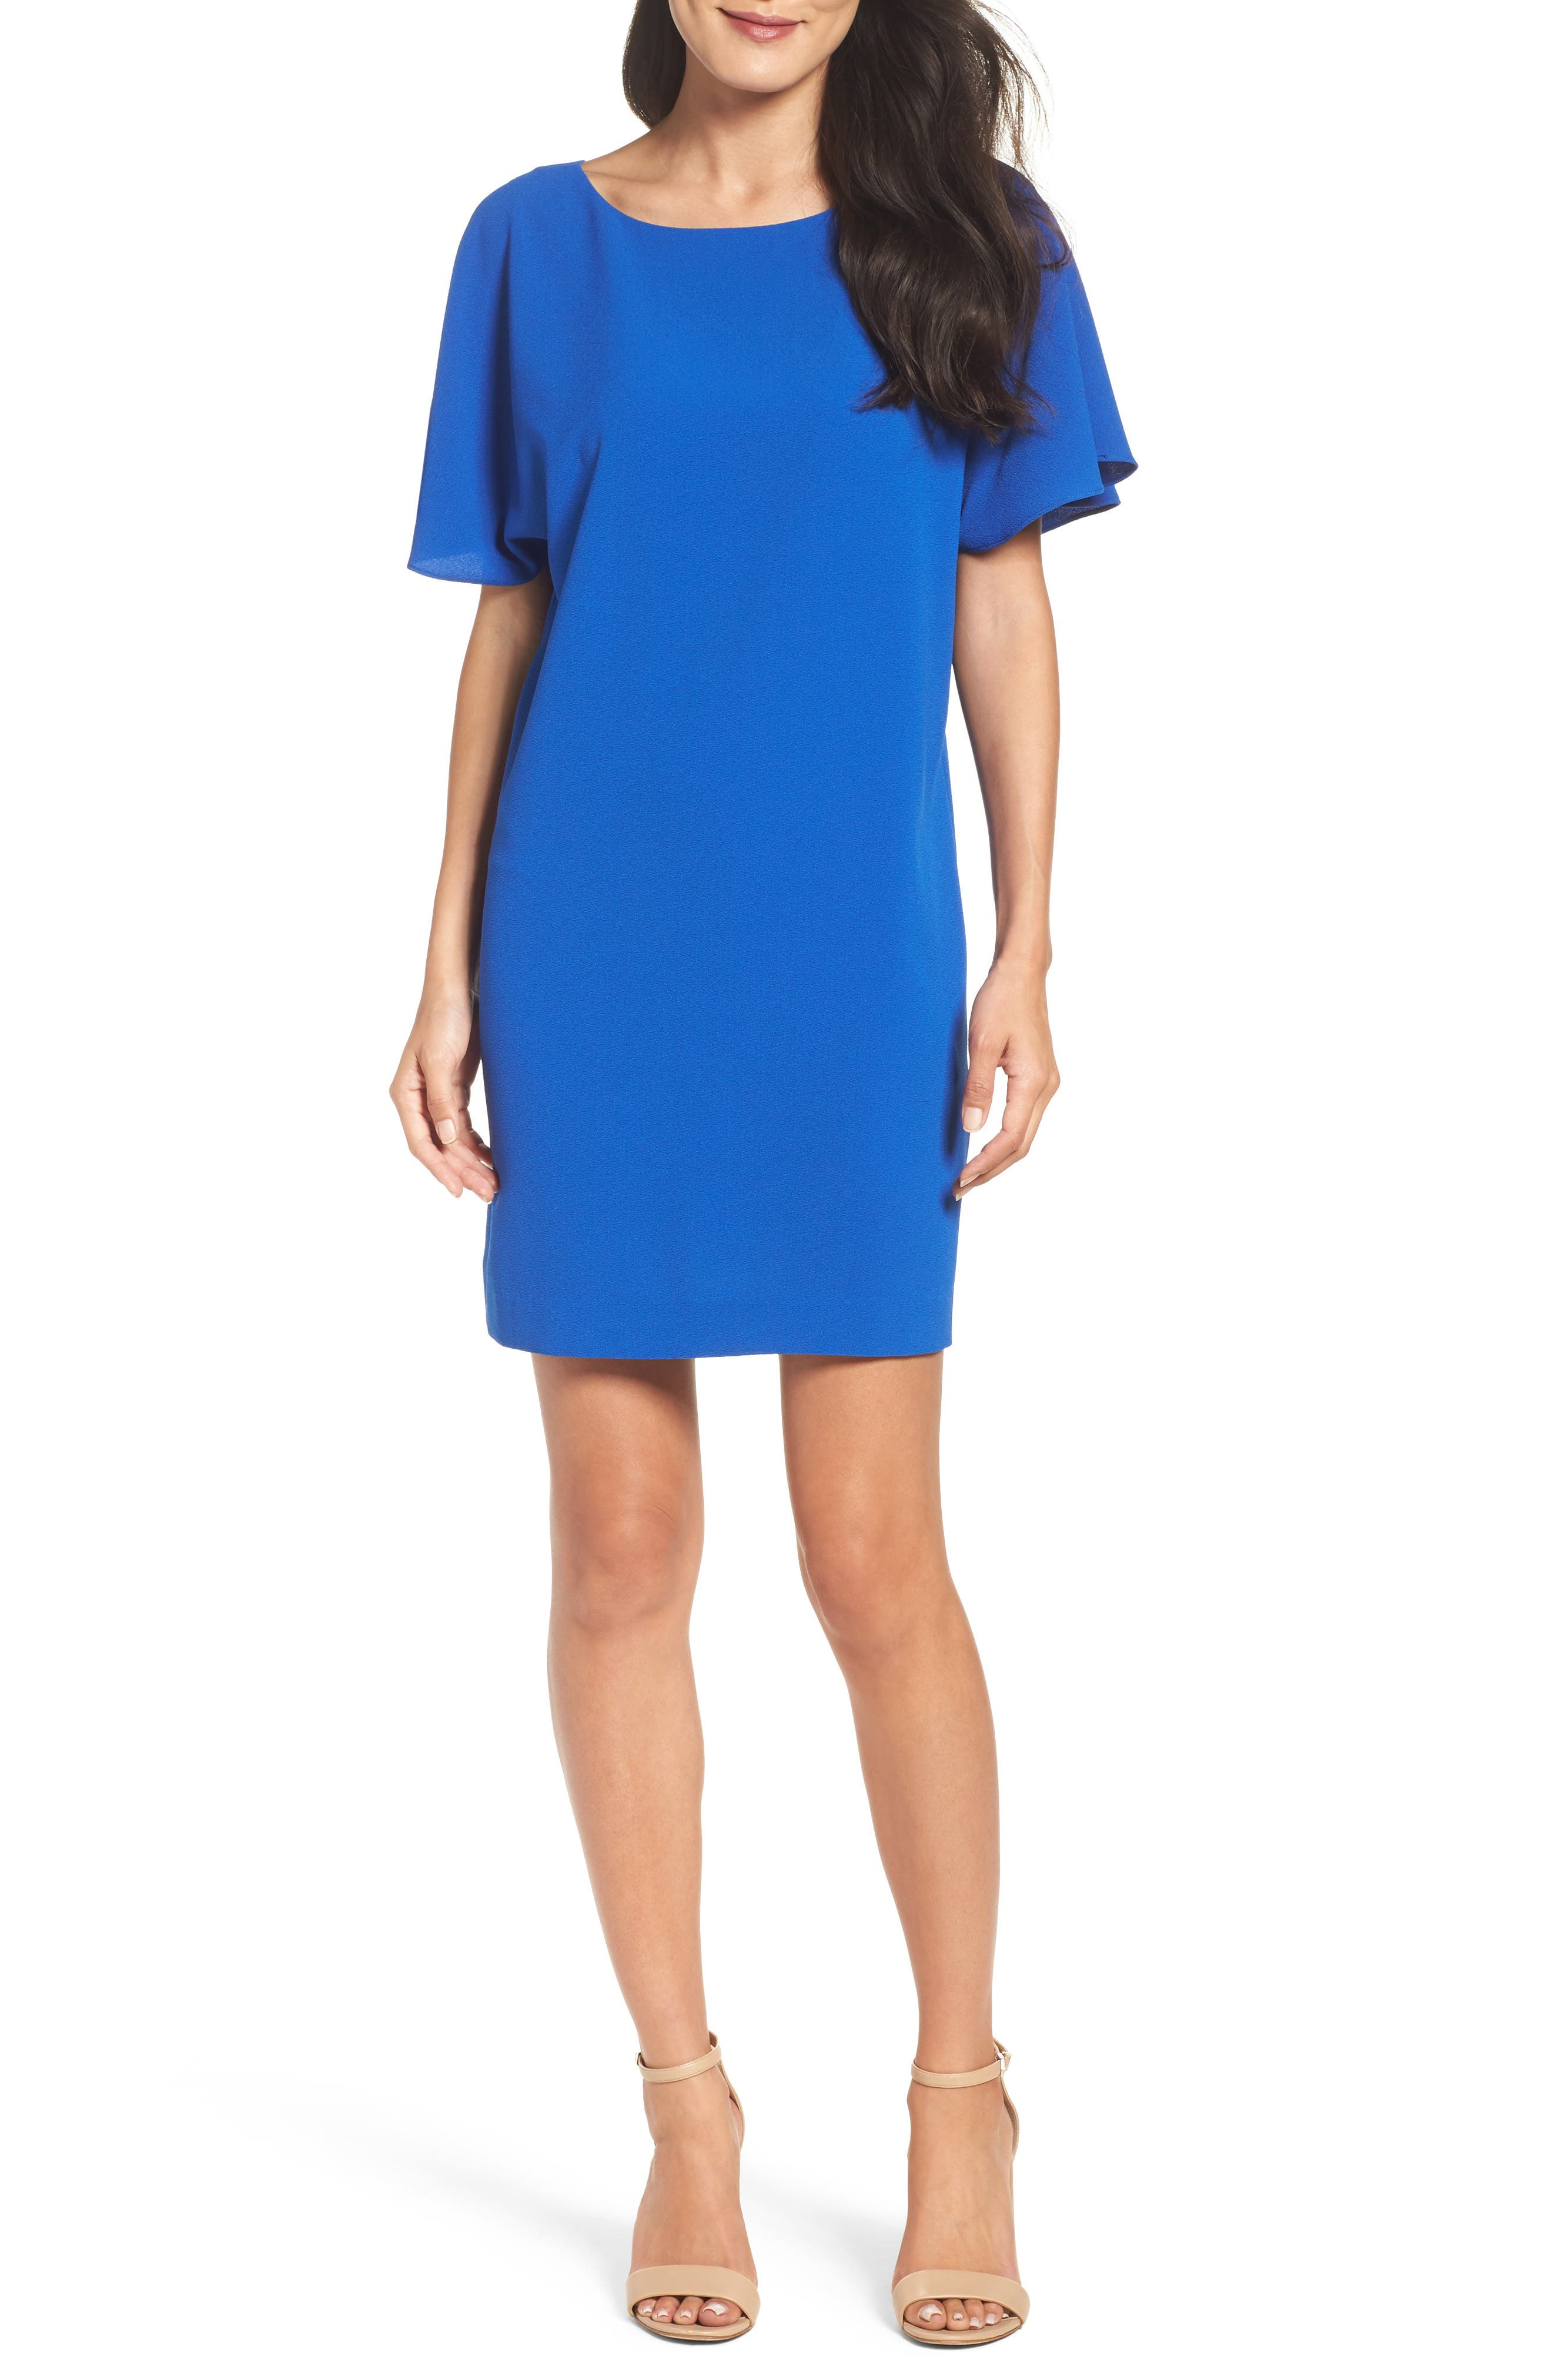 Felicity & Coco Ruffle Back Shift Dress (Nordstrom Exclusive)